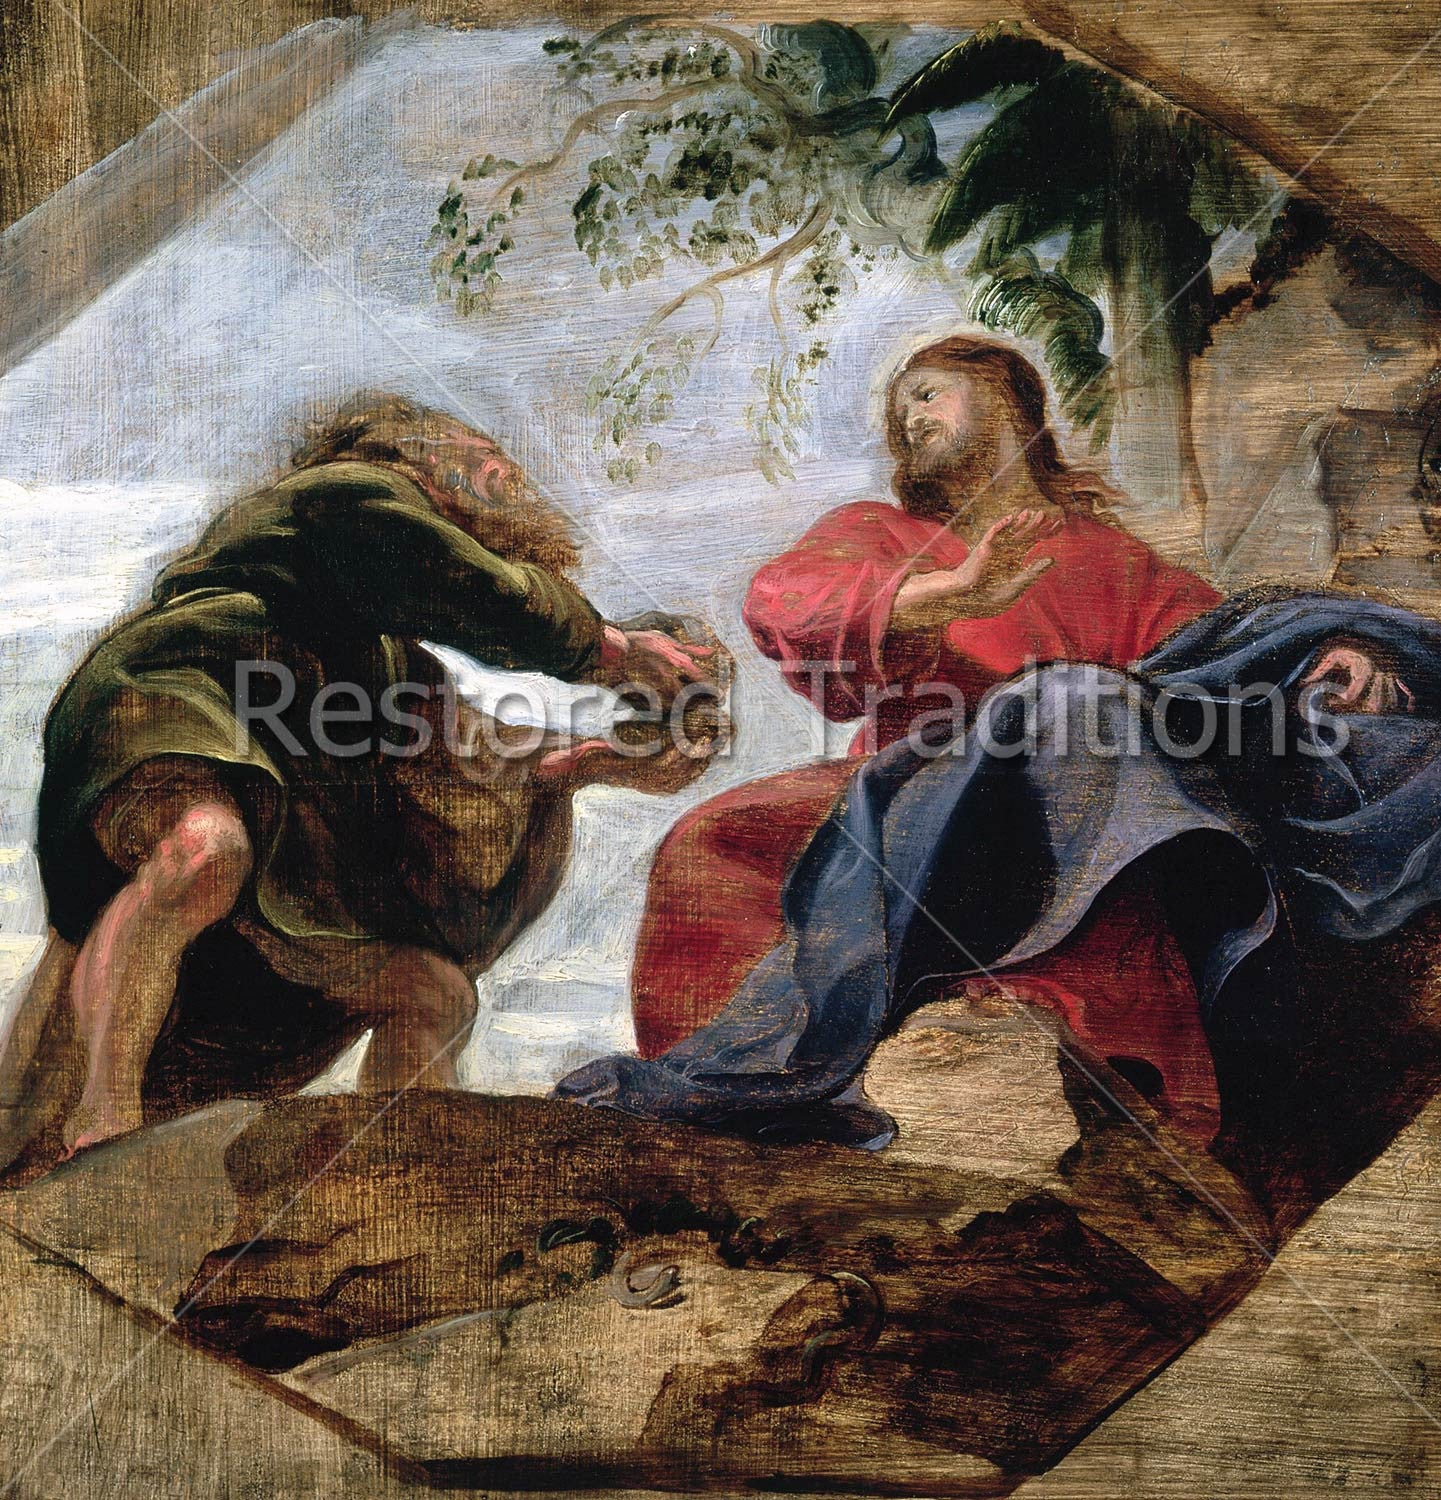 High Res Art Image Of The Temptation Christ By Peter Paul Rubens